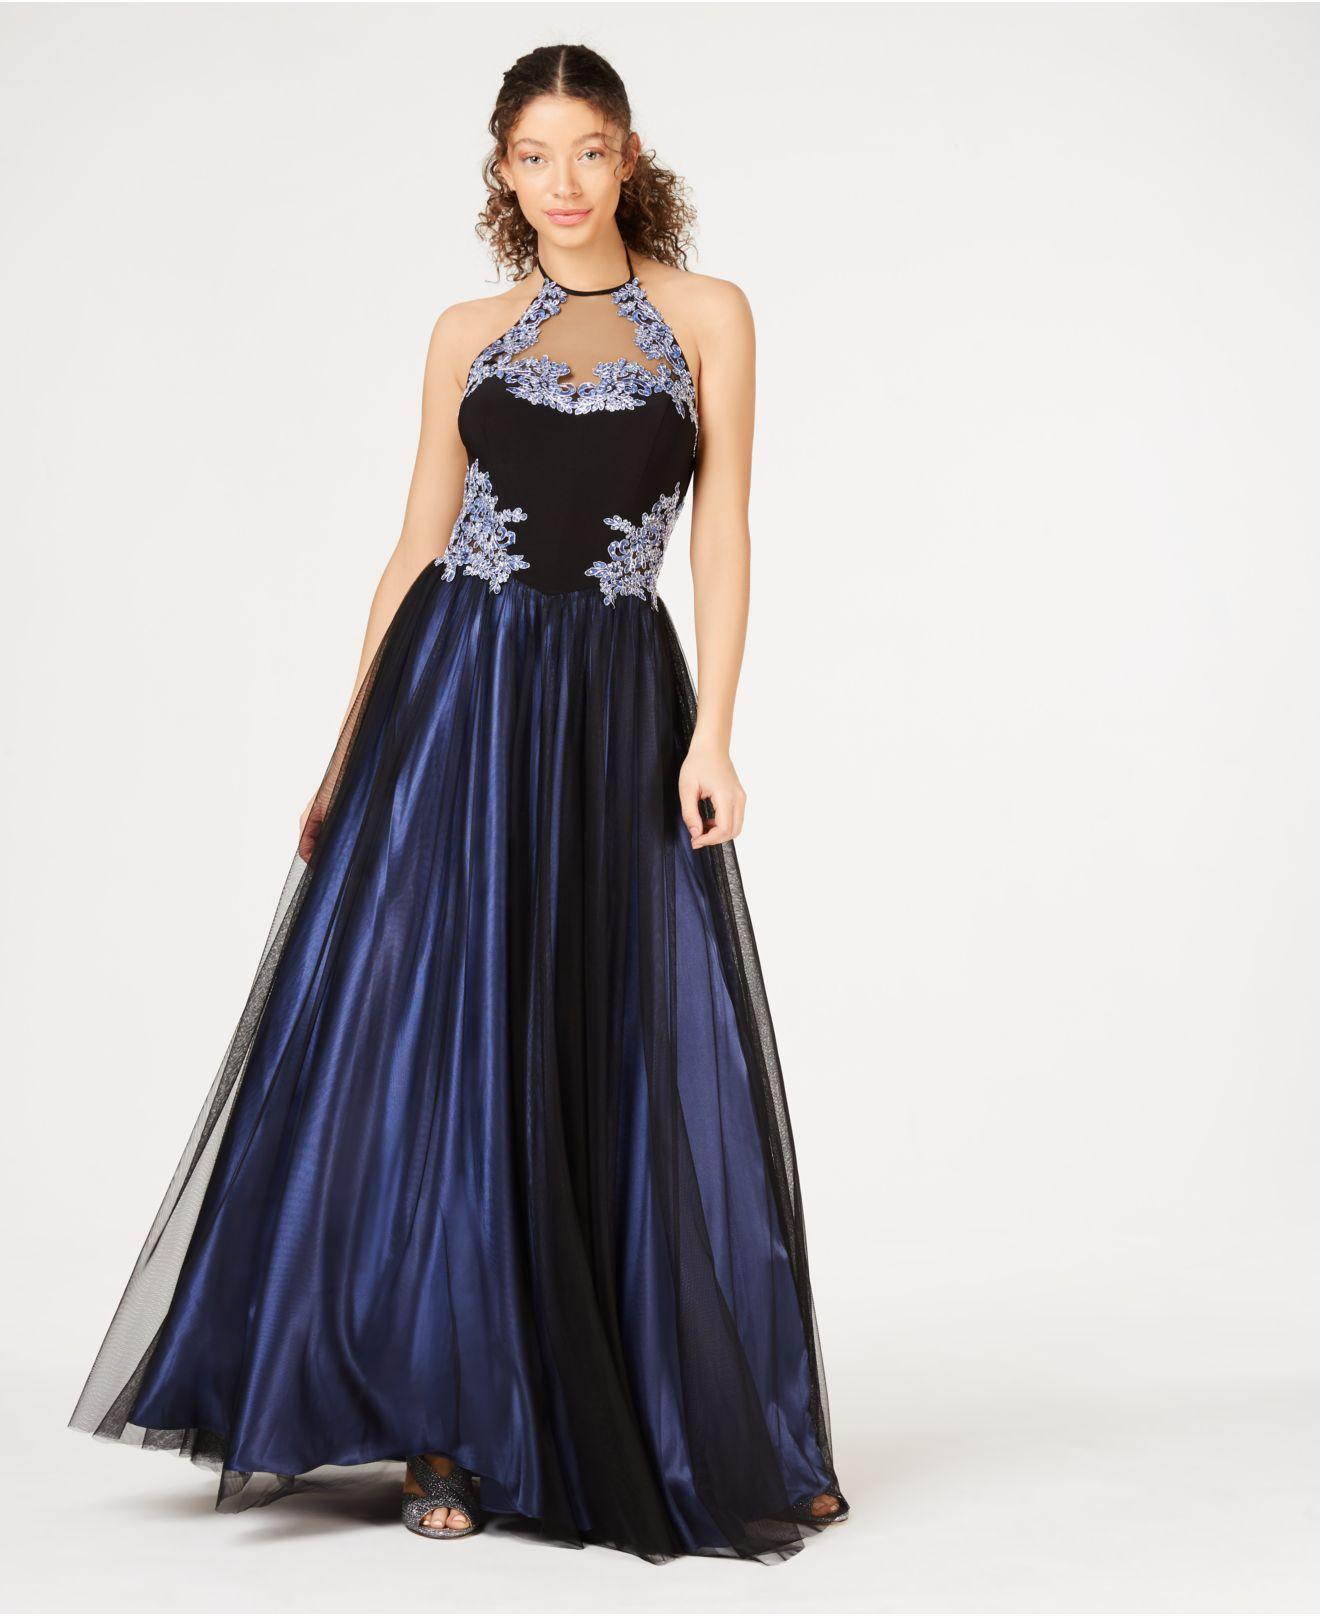 21542fbace Blondie Nites Juniors' Sequined Appliqué Halter Gown in Blue - Lyst